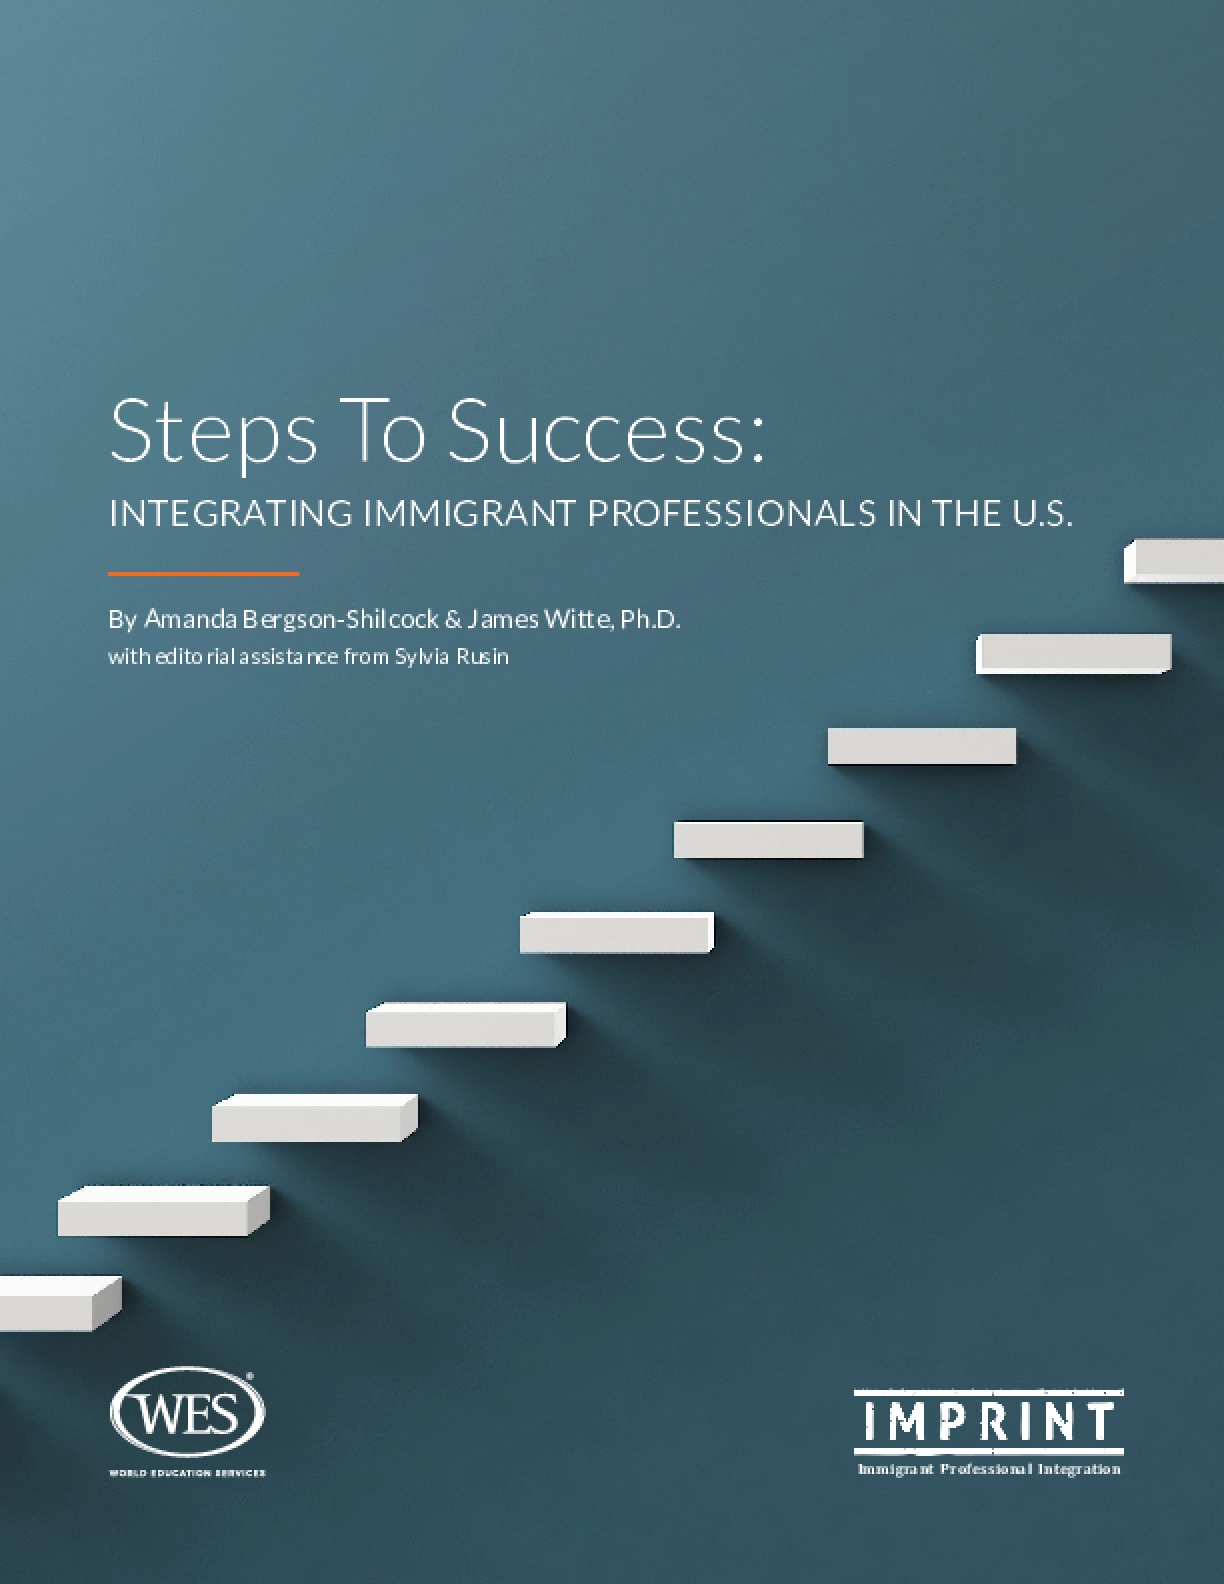 Steps To Success: Integrating Immigrant Professionals in the u.s.